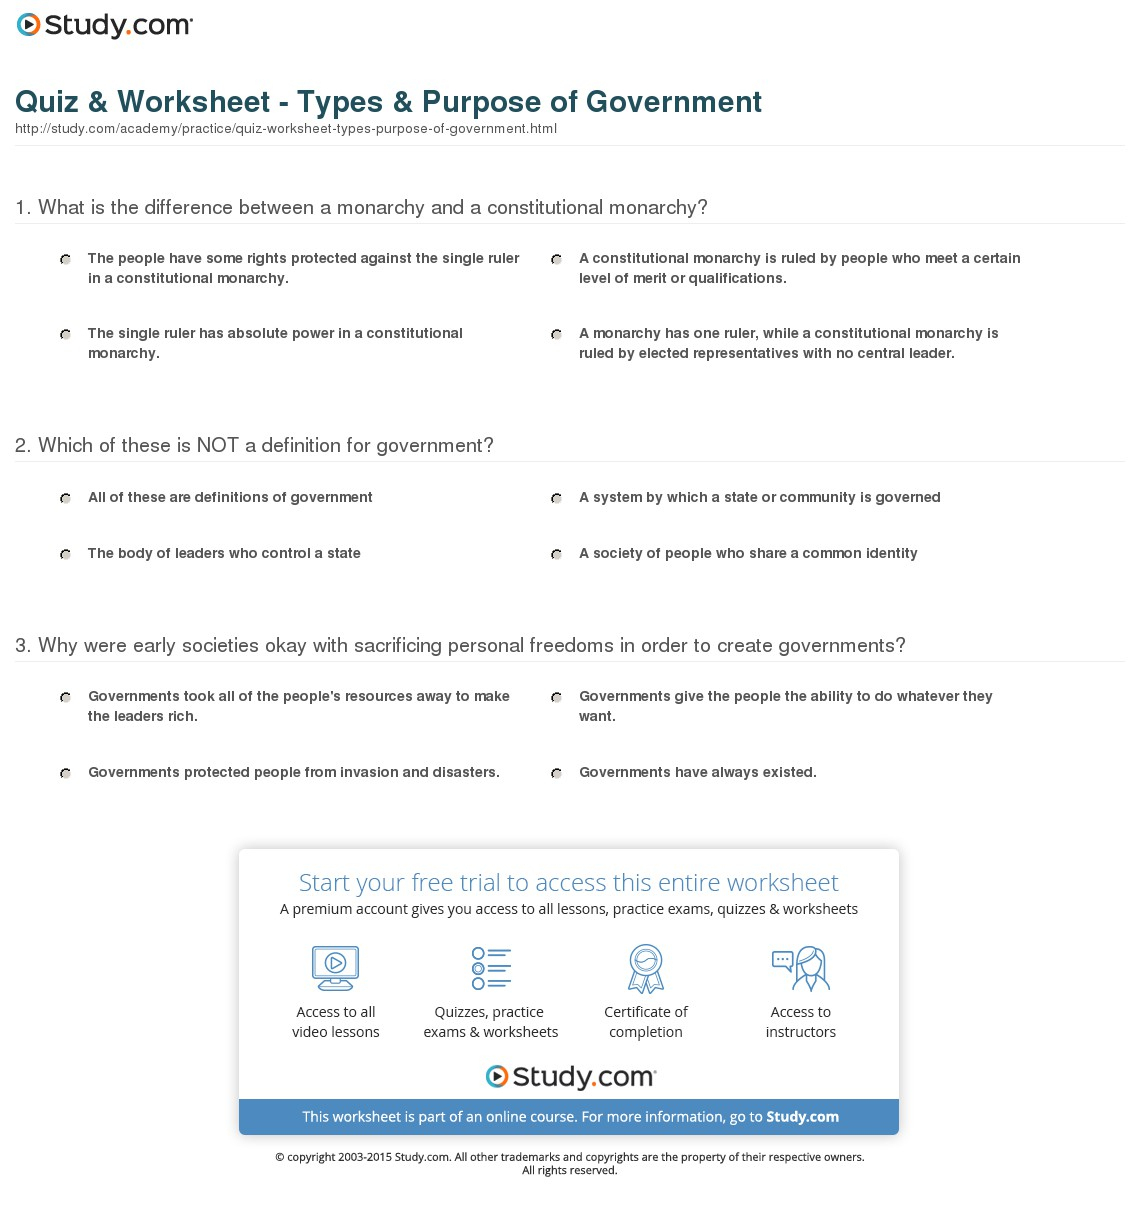 Quiz & Worksheet - Types & Purpose Of Government | Study | Types Of Government Worksheets Printable